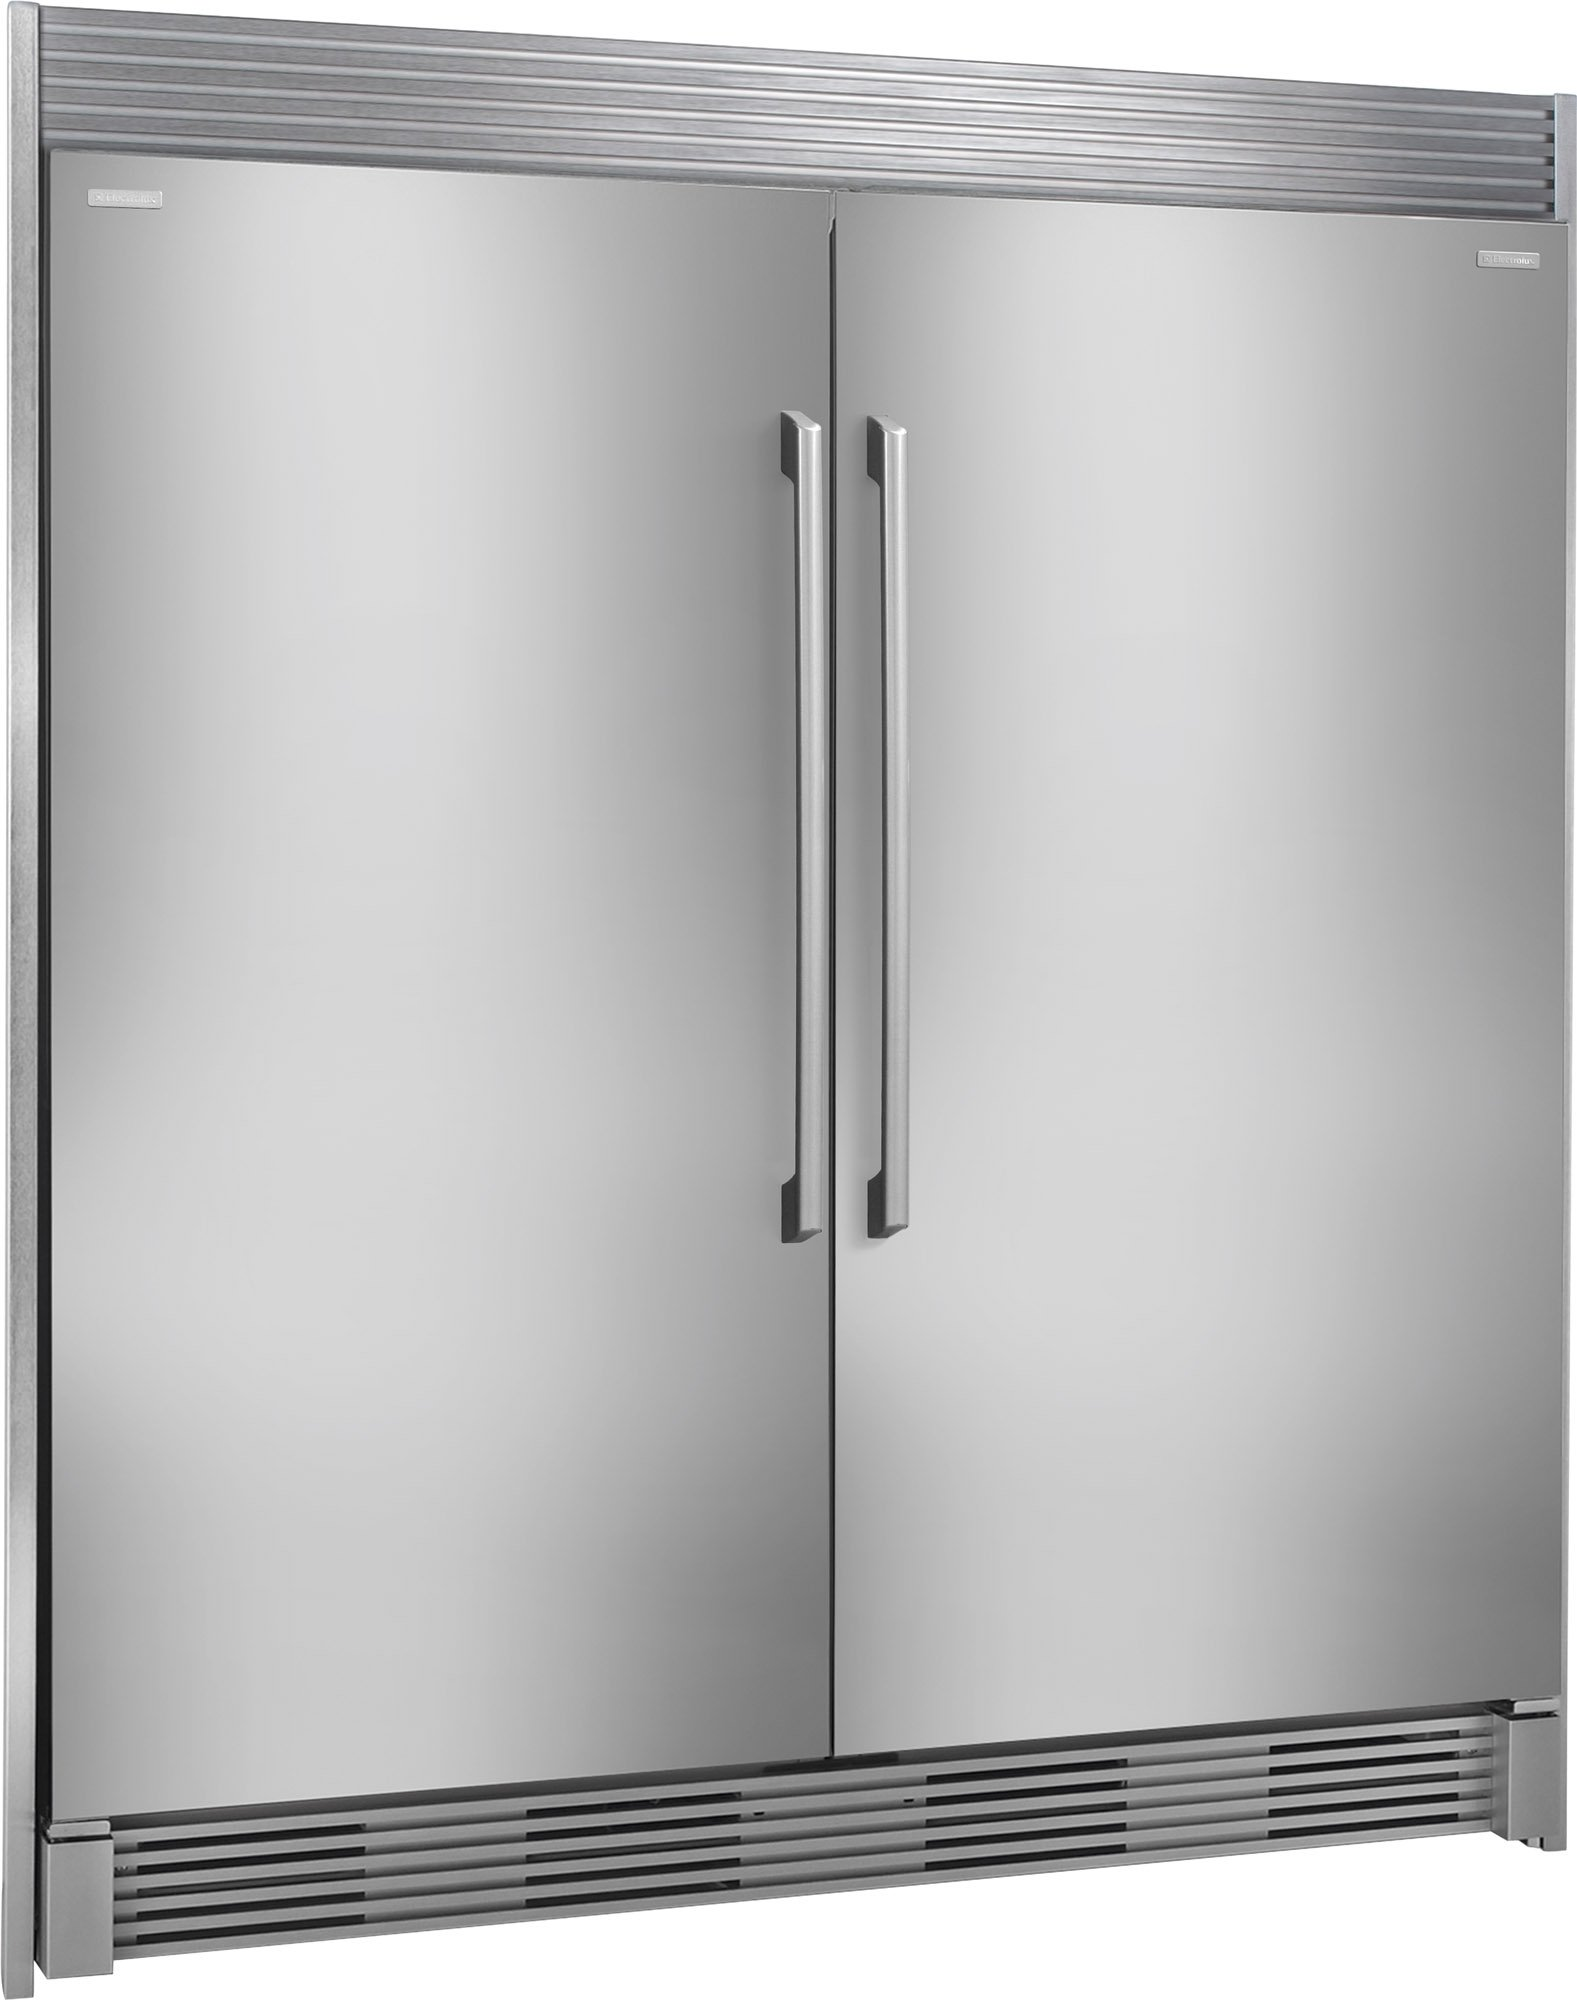 Electrolux IQ Touch 32'' Built-in All Refrigerator EI32AR80QS & All Freezer EI32AF80QS with TRIMKITSS2